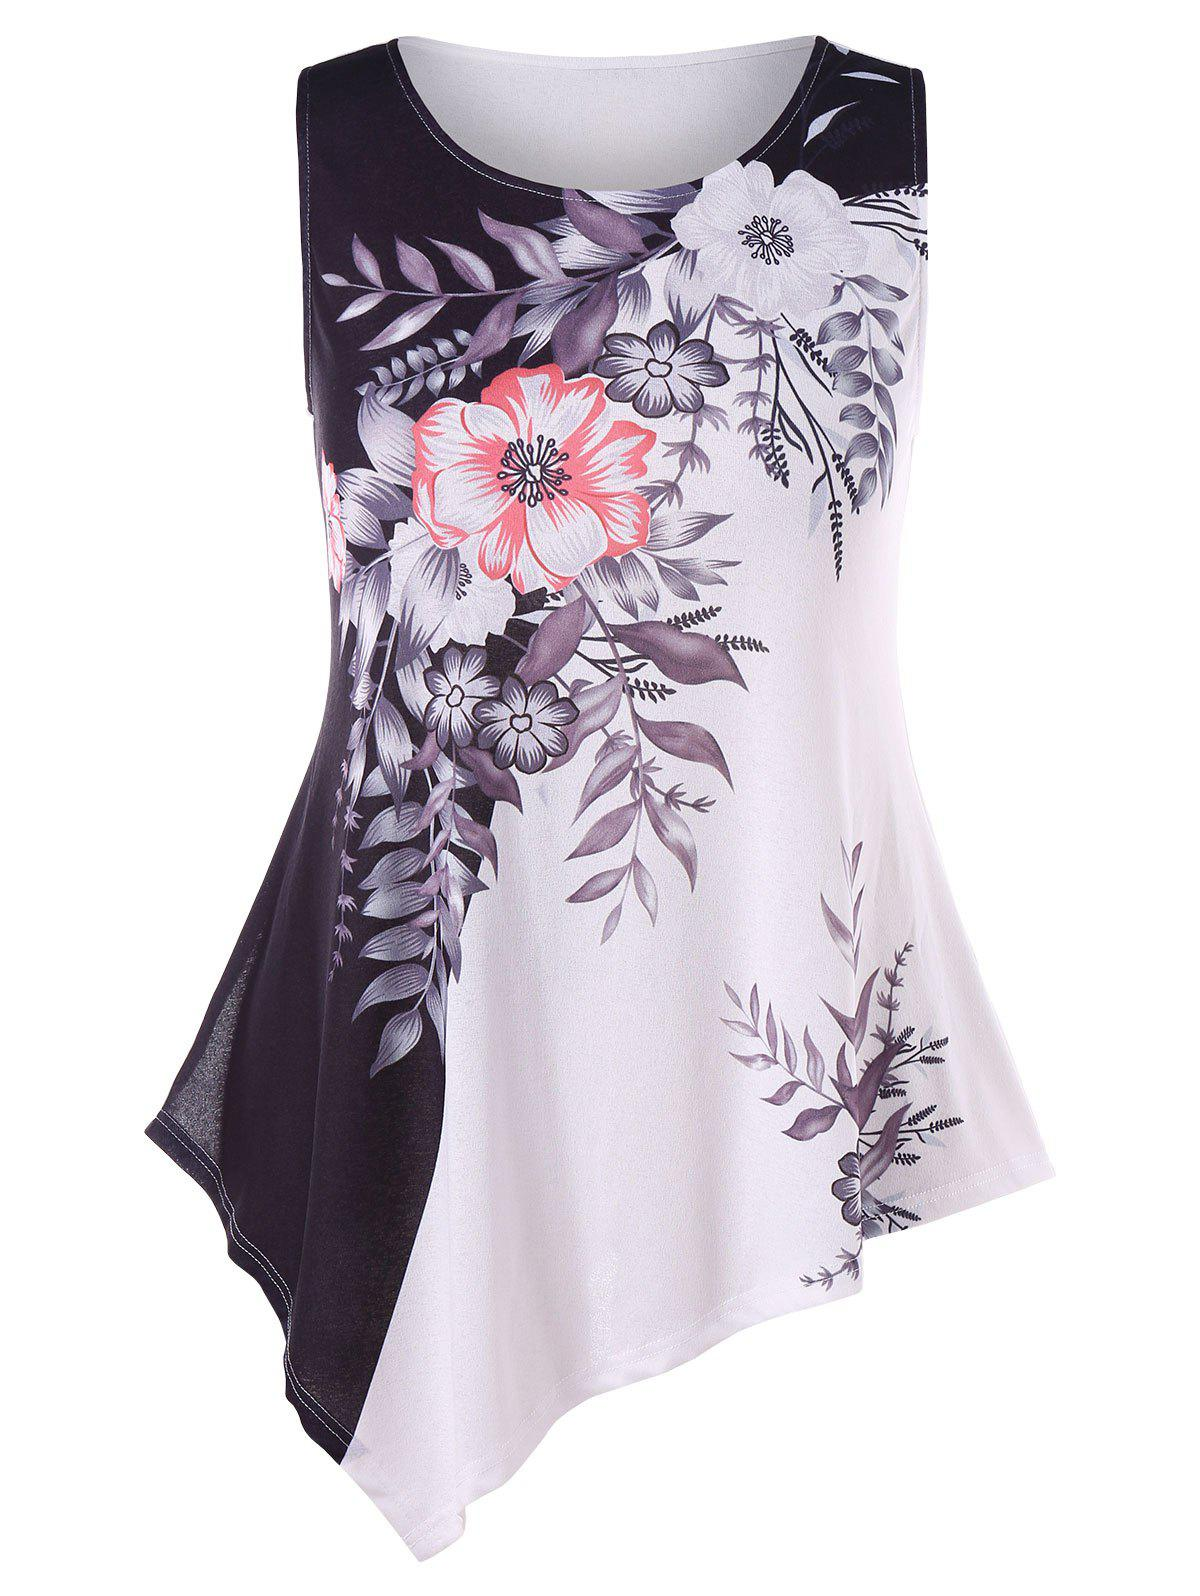 New Plus Size Vibrant Floral Asymmetric Tank Top